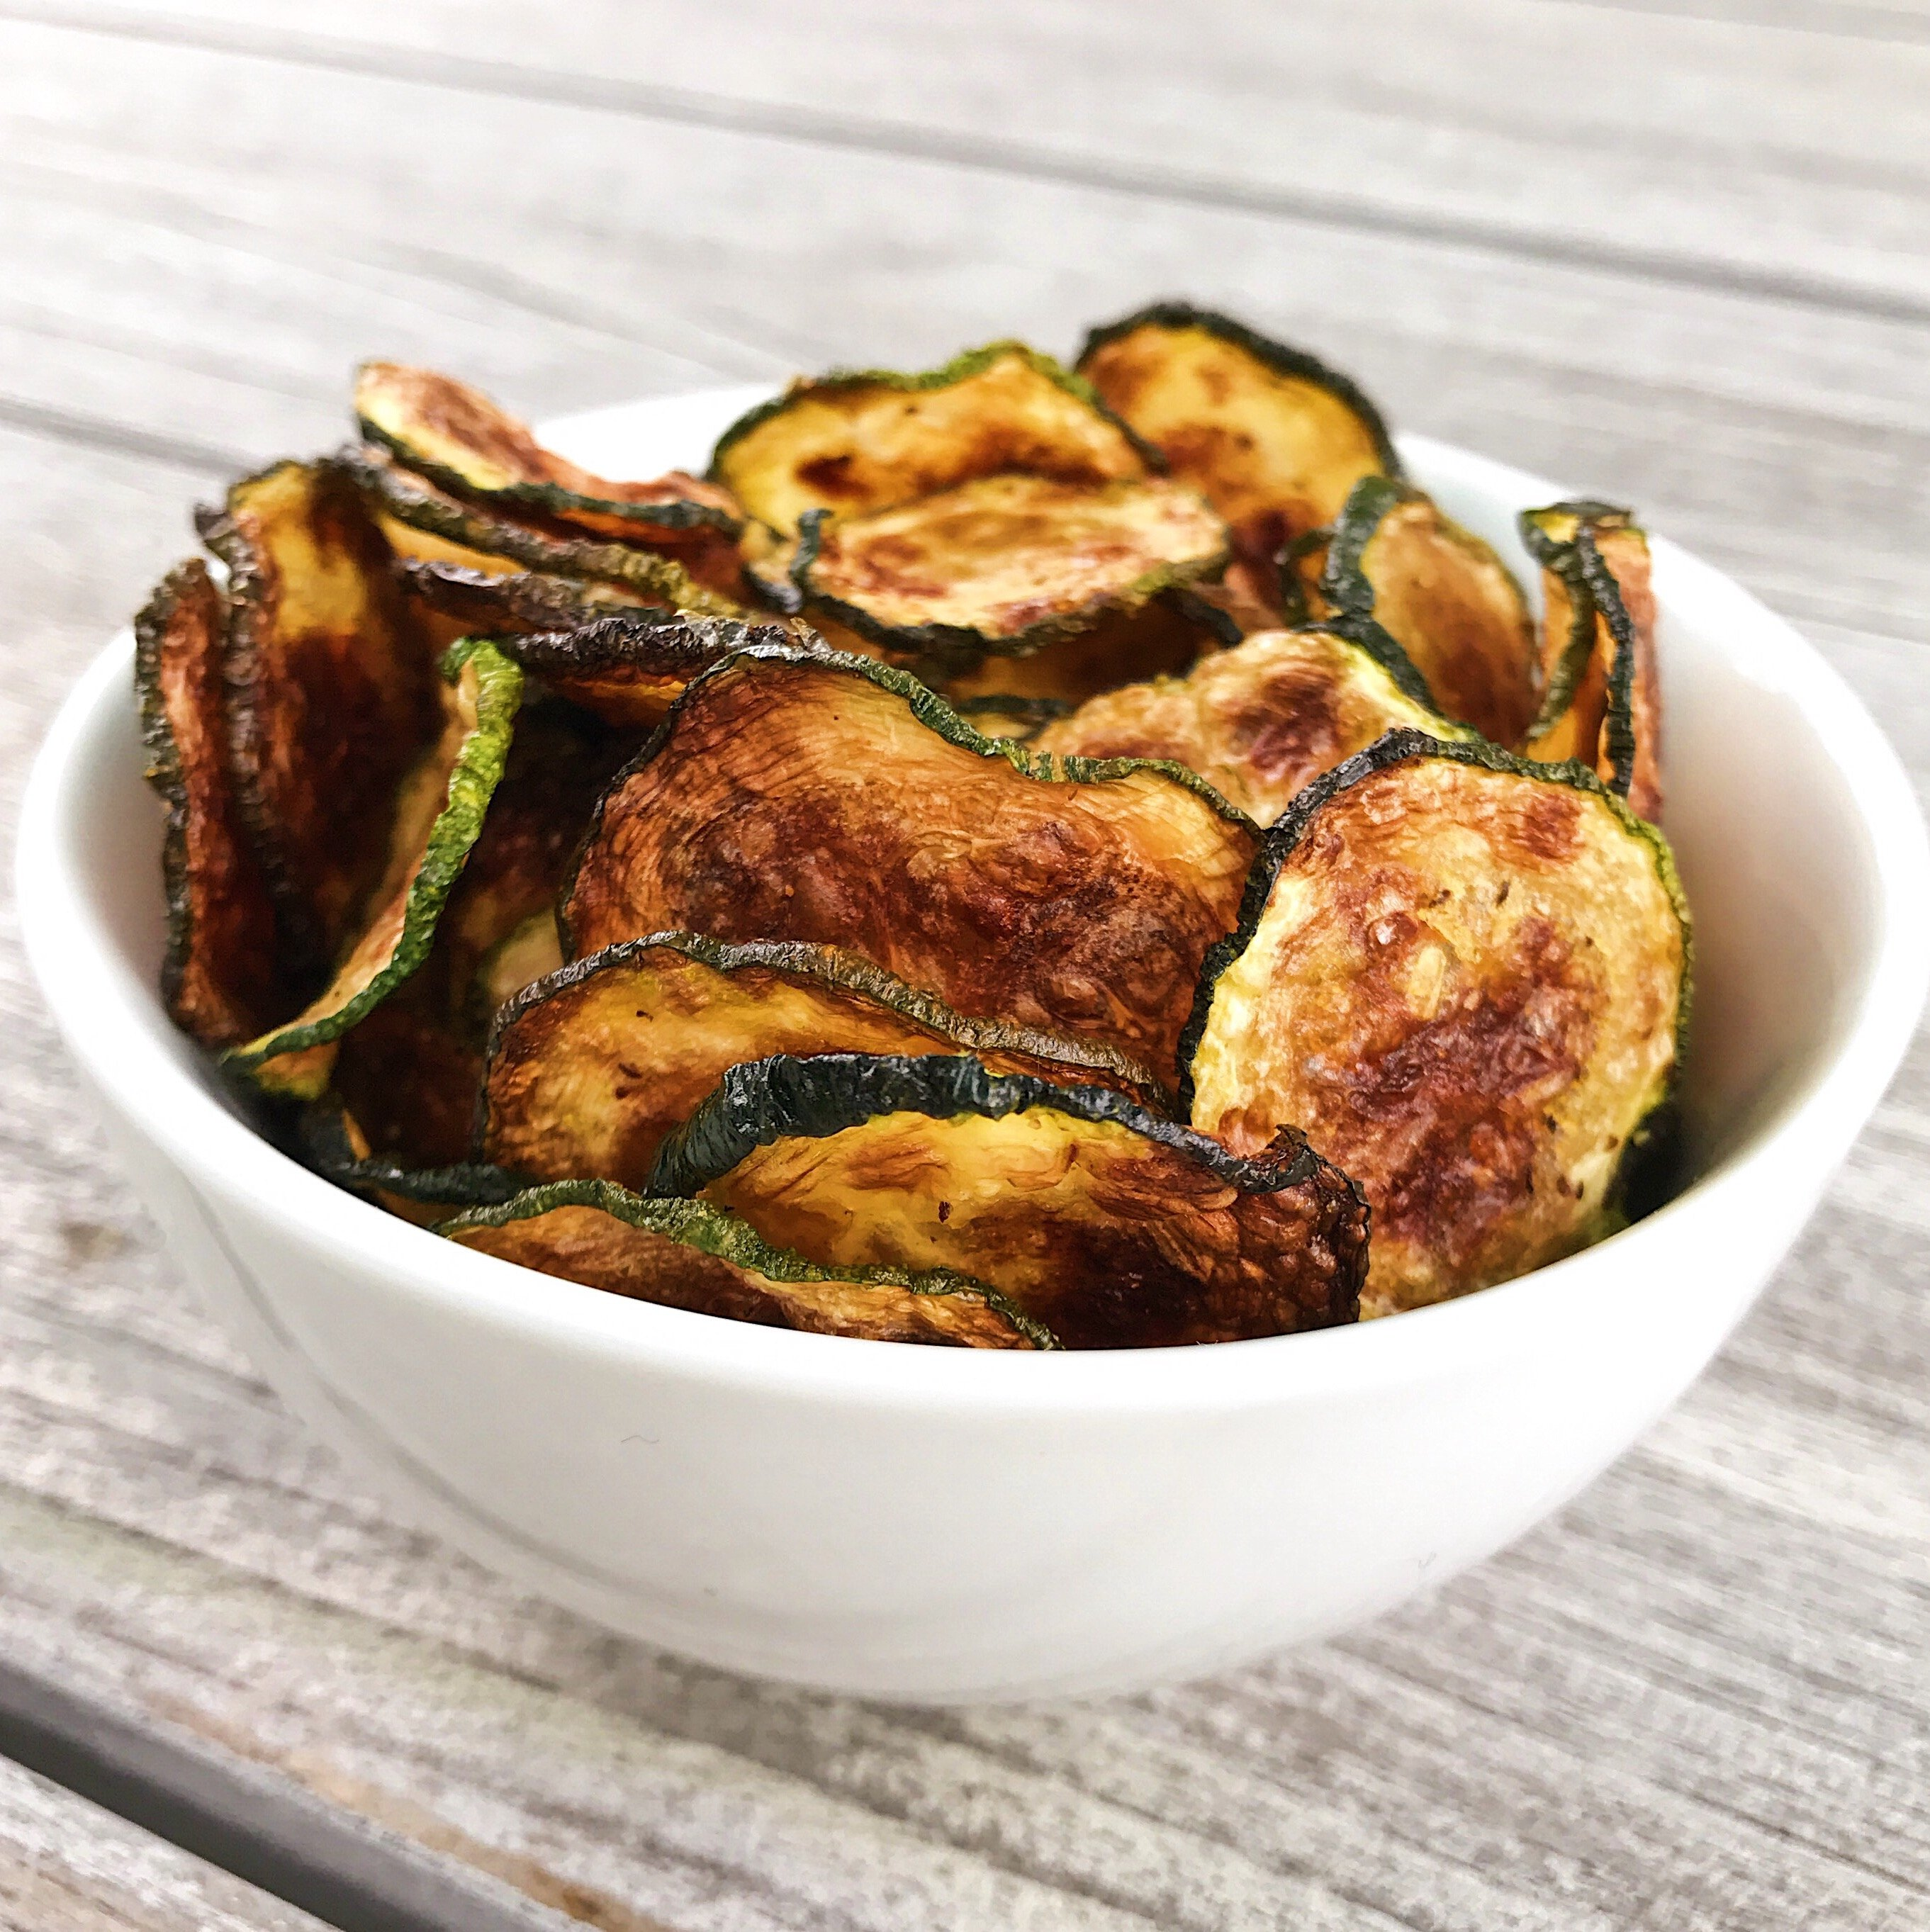 zucchini chips gluten free recipes zucchini #glutenfree #glutenfreerecipes healthygffamily.com